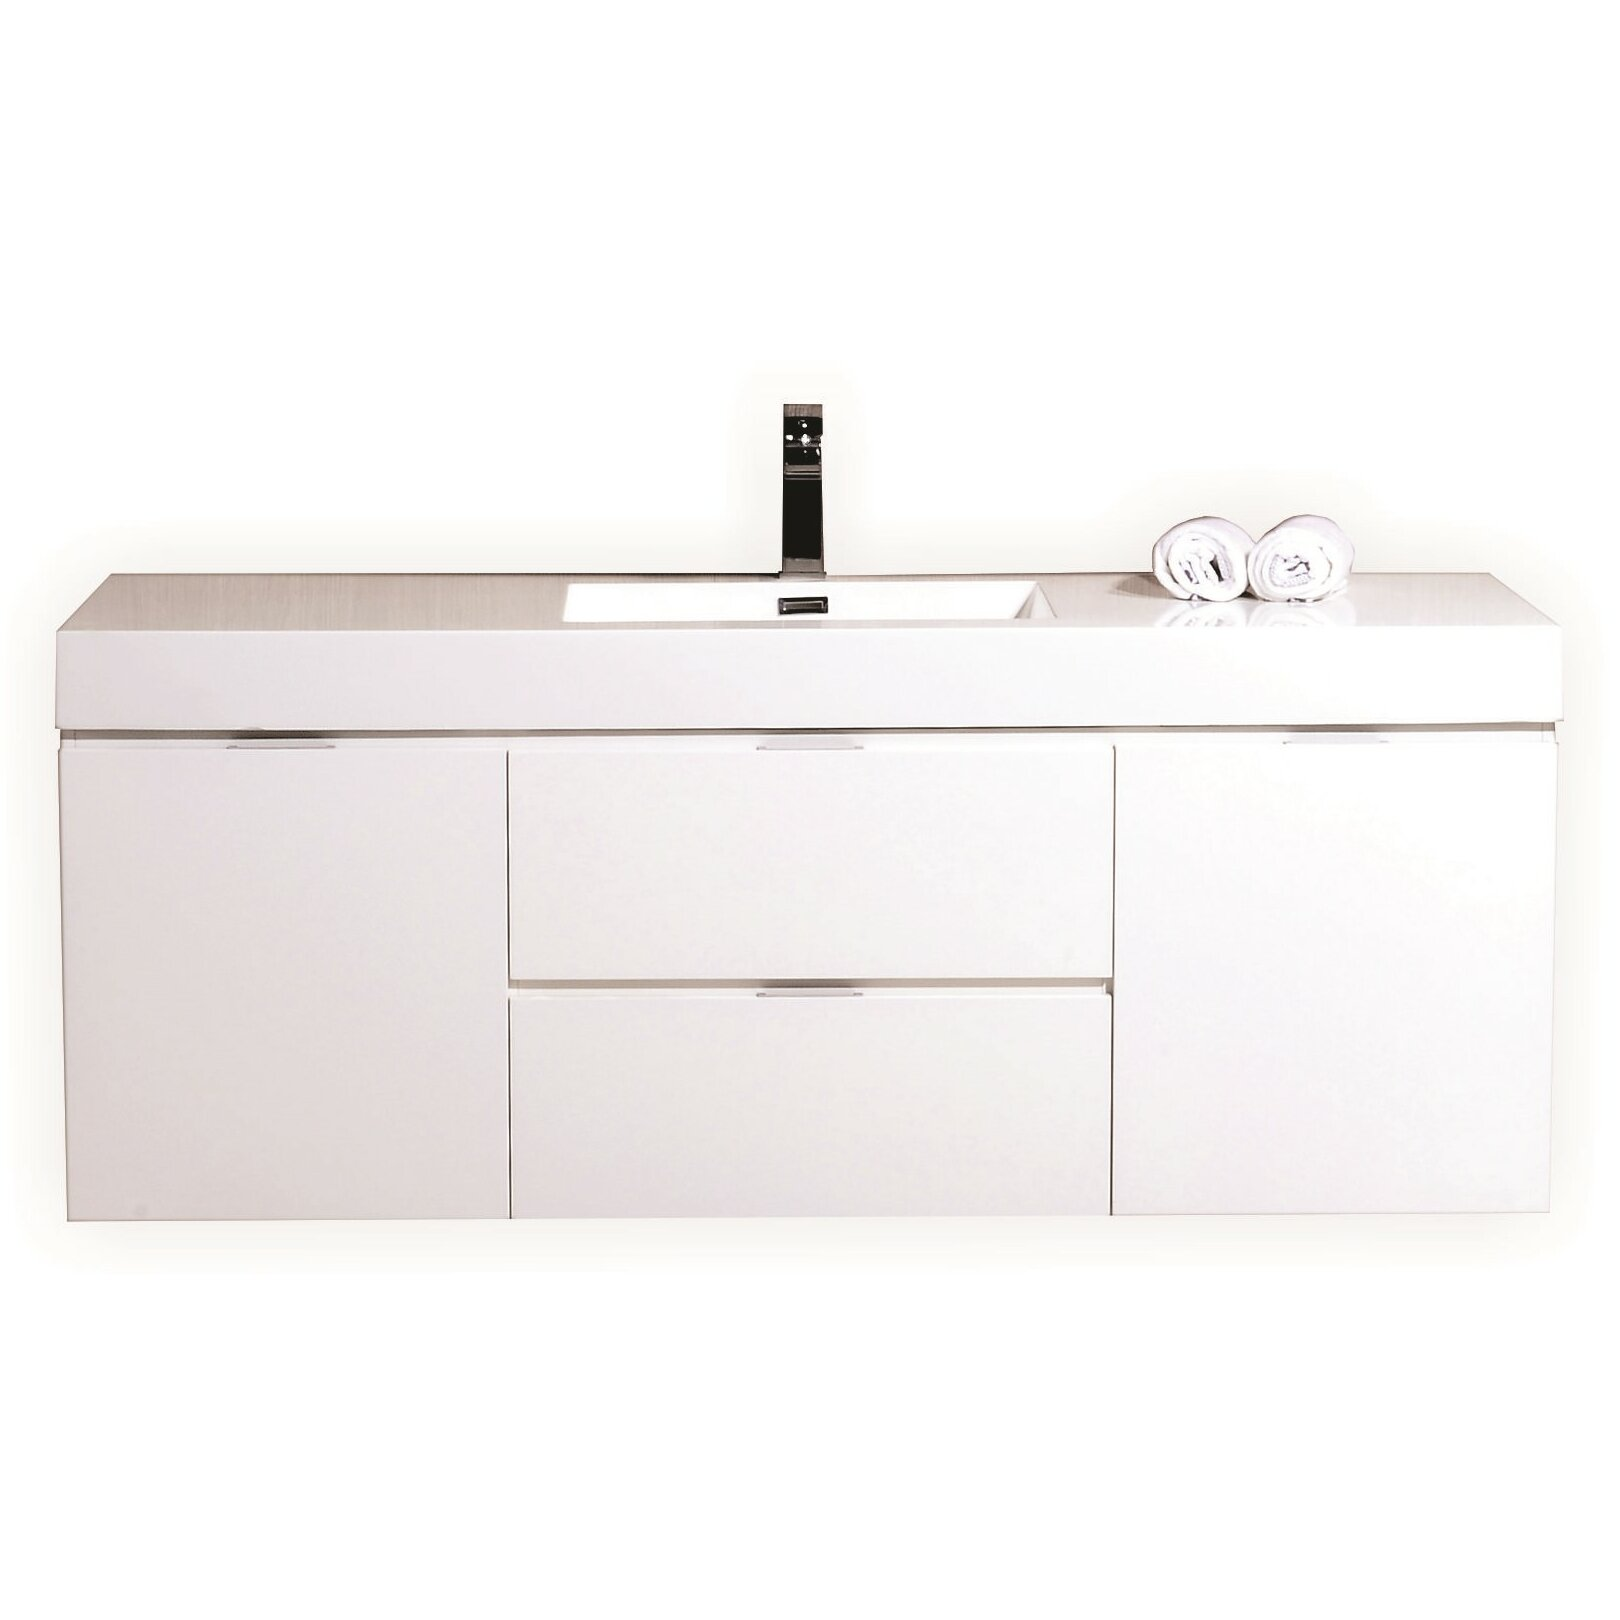 Kube bath bliss 60 single wall mount modern bathroom vanity set reviews wayfair - Kona modern bathroom vanity set ...